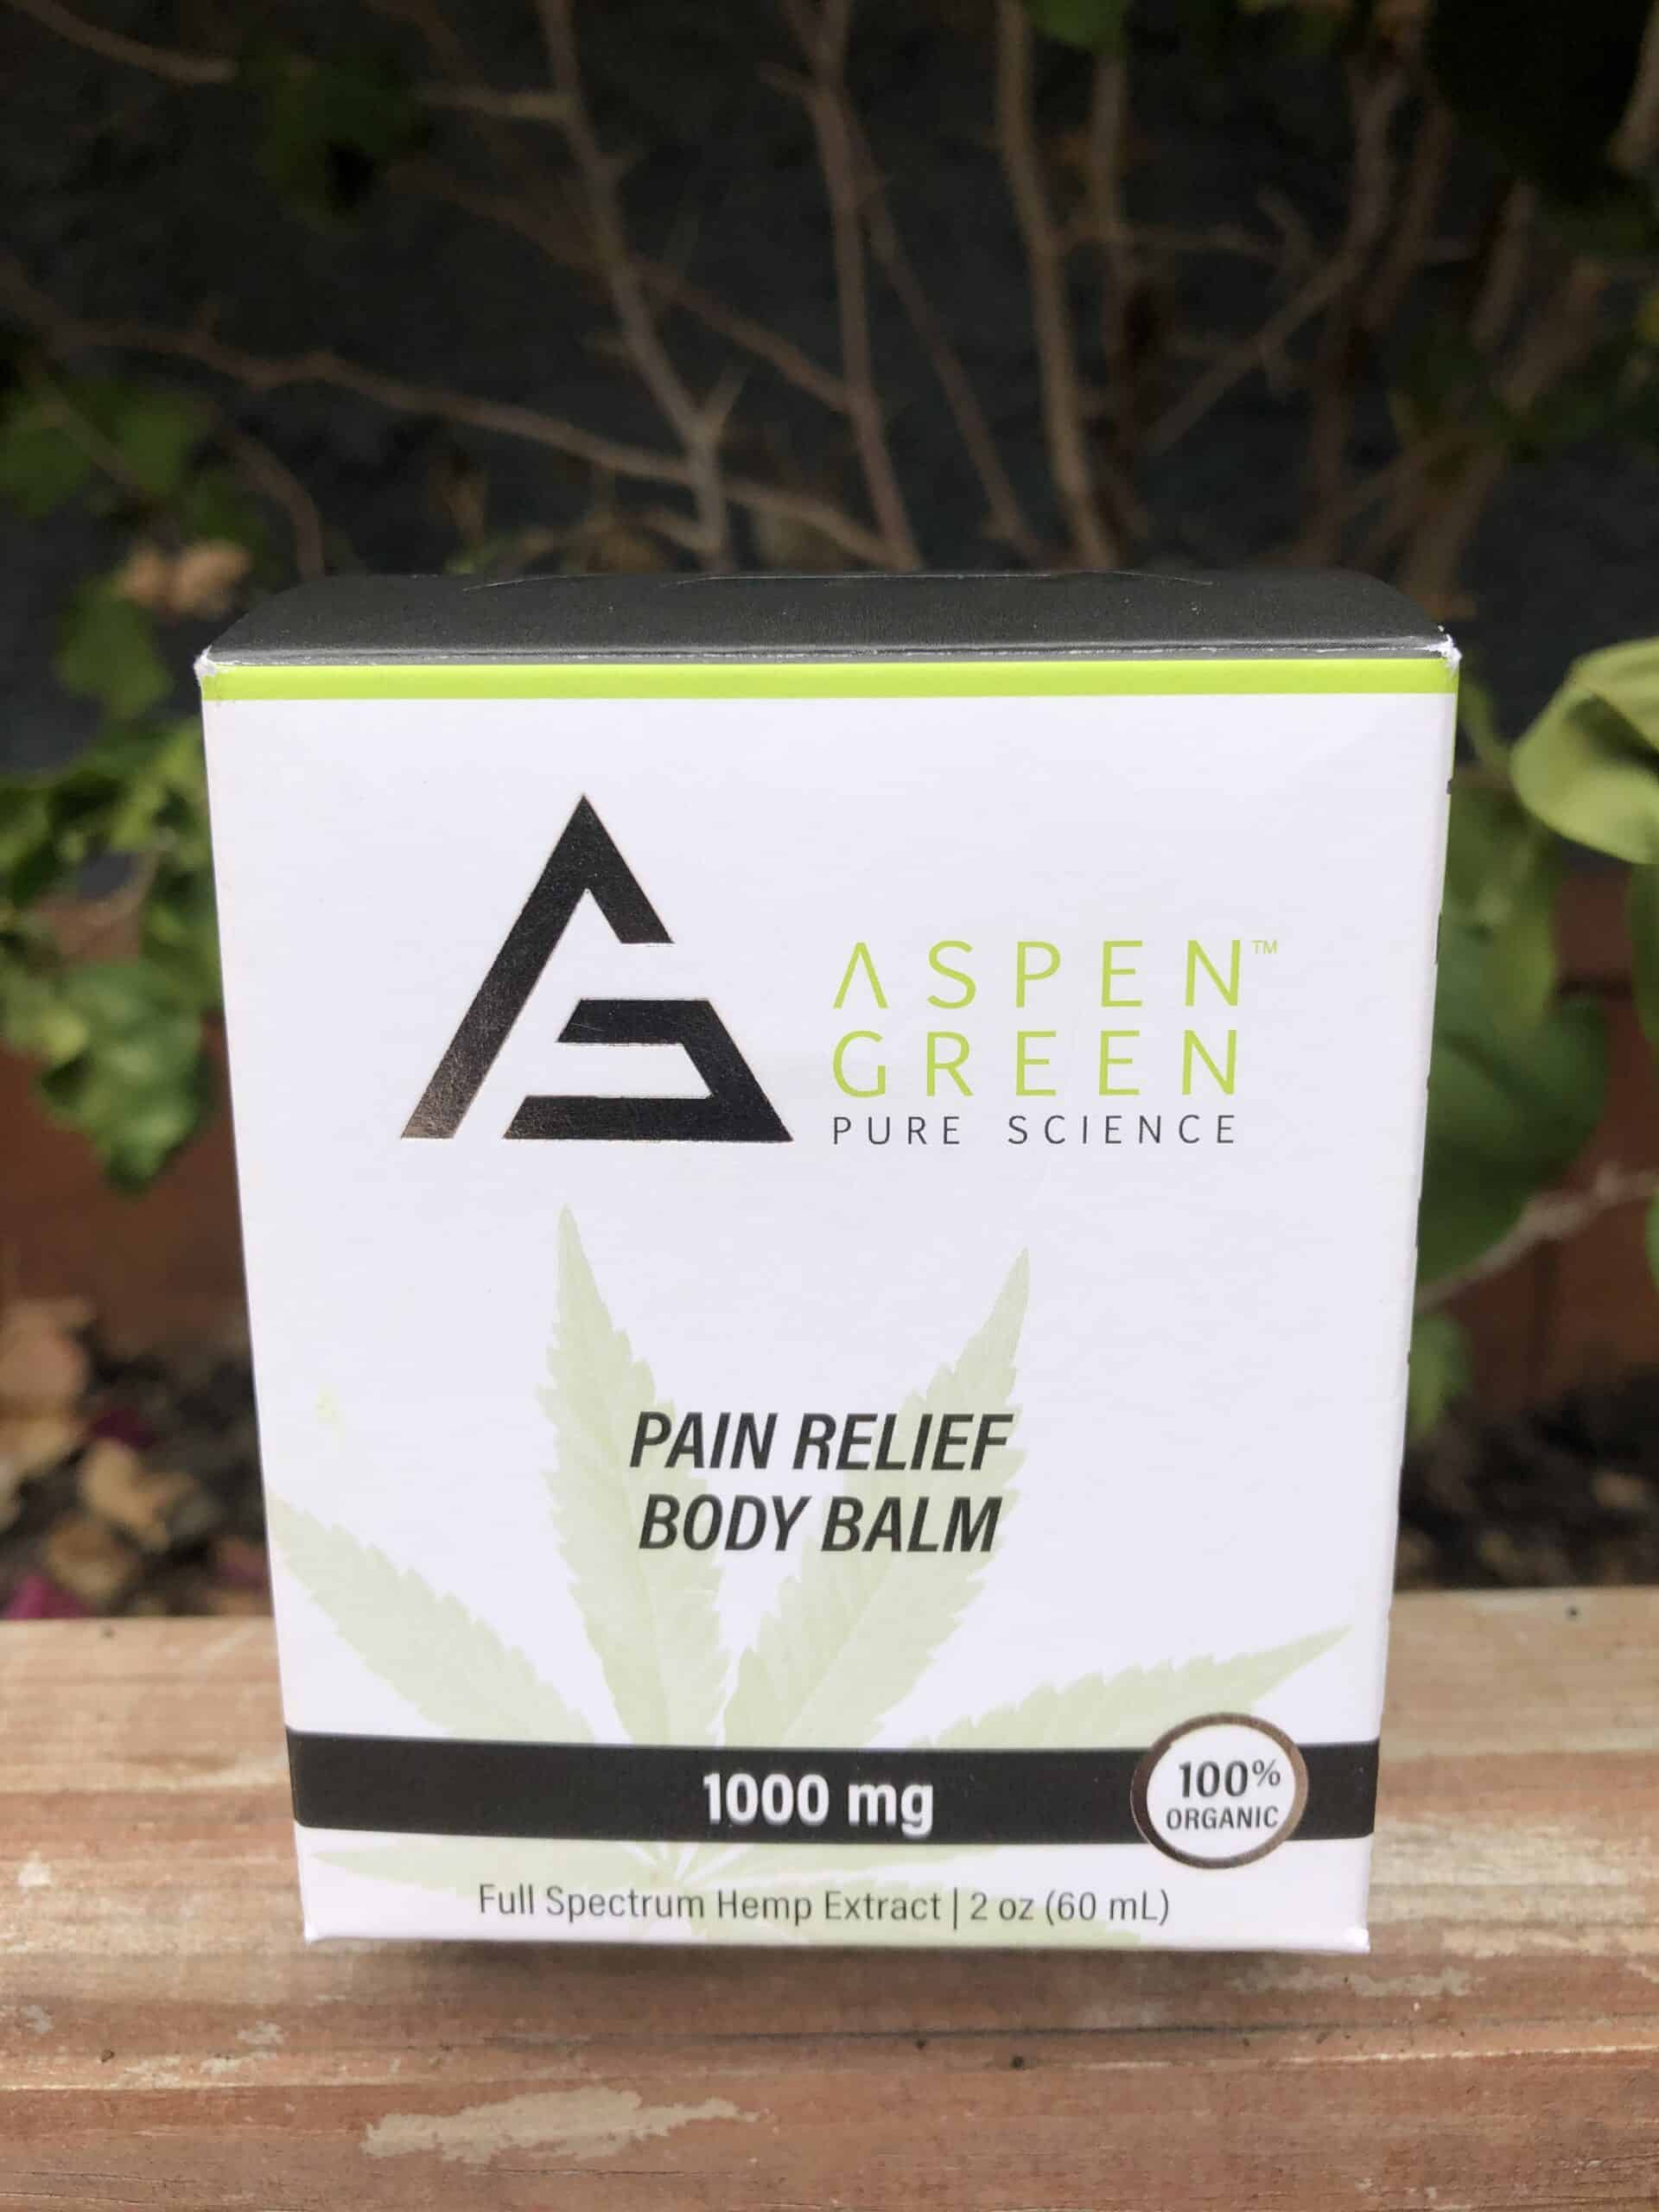 aspen green pain relief body balm save on cannabis review